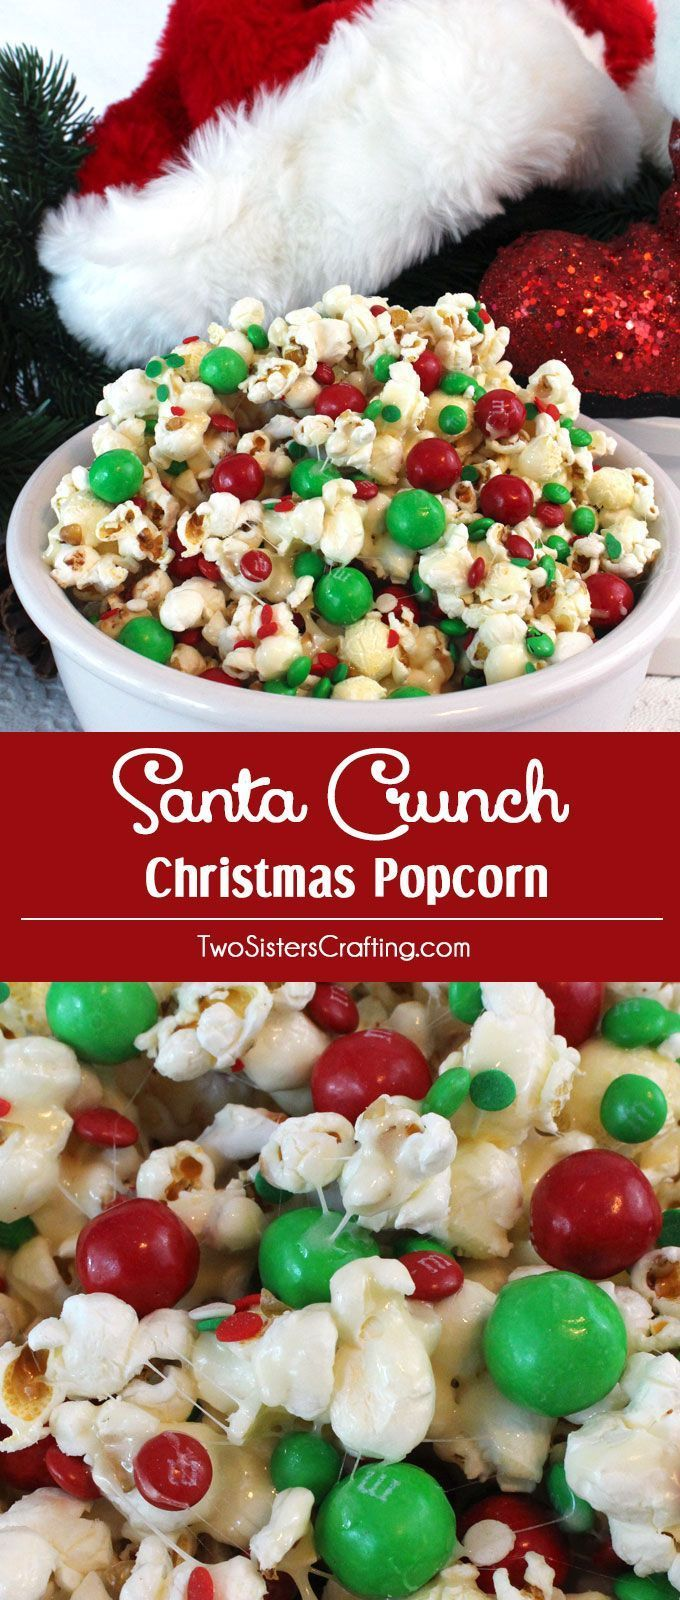 Santa Crunch Popcorn - a fun Christmas treat. Sweet, salty, crunchy and delicious and it is so easy to make. It would be a great Christmas Party Food or a movie night dessert! Follow us for more fun Christmas Dessert ideas.